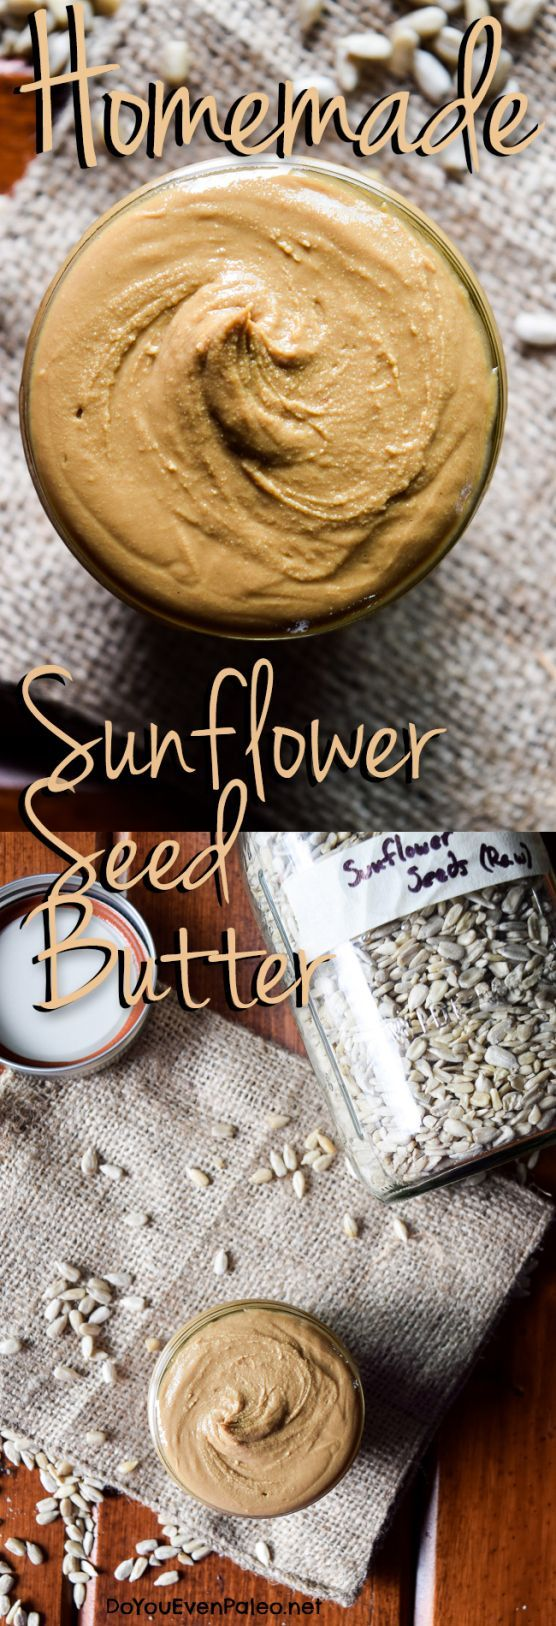 Sunflower Seed Butter - the nut-free solution to peanut butter cravings! |